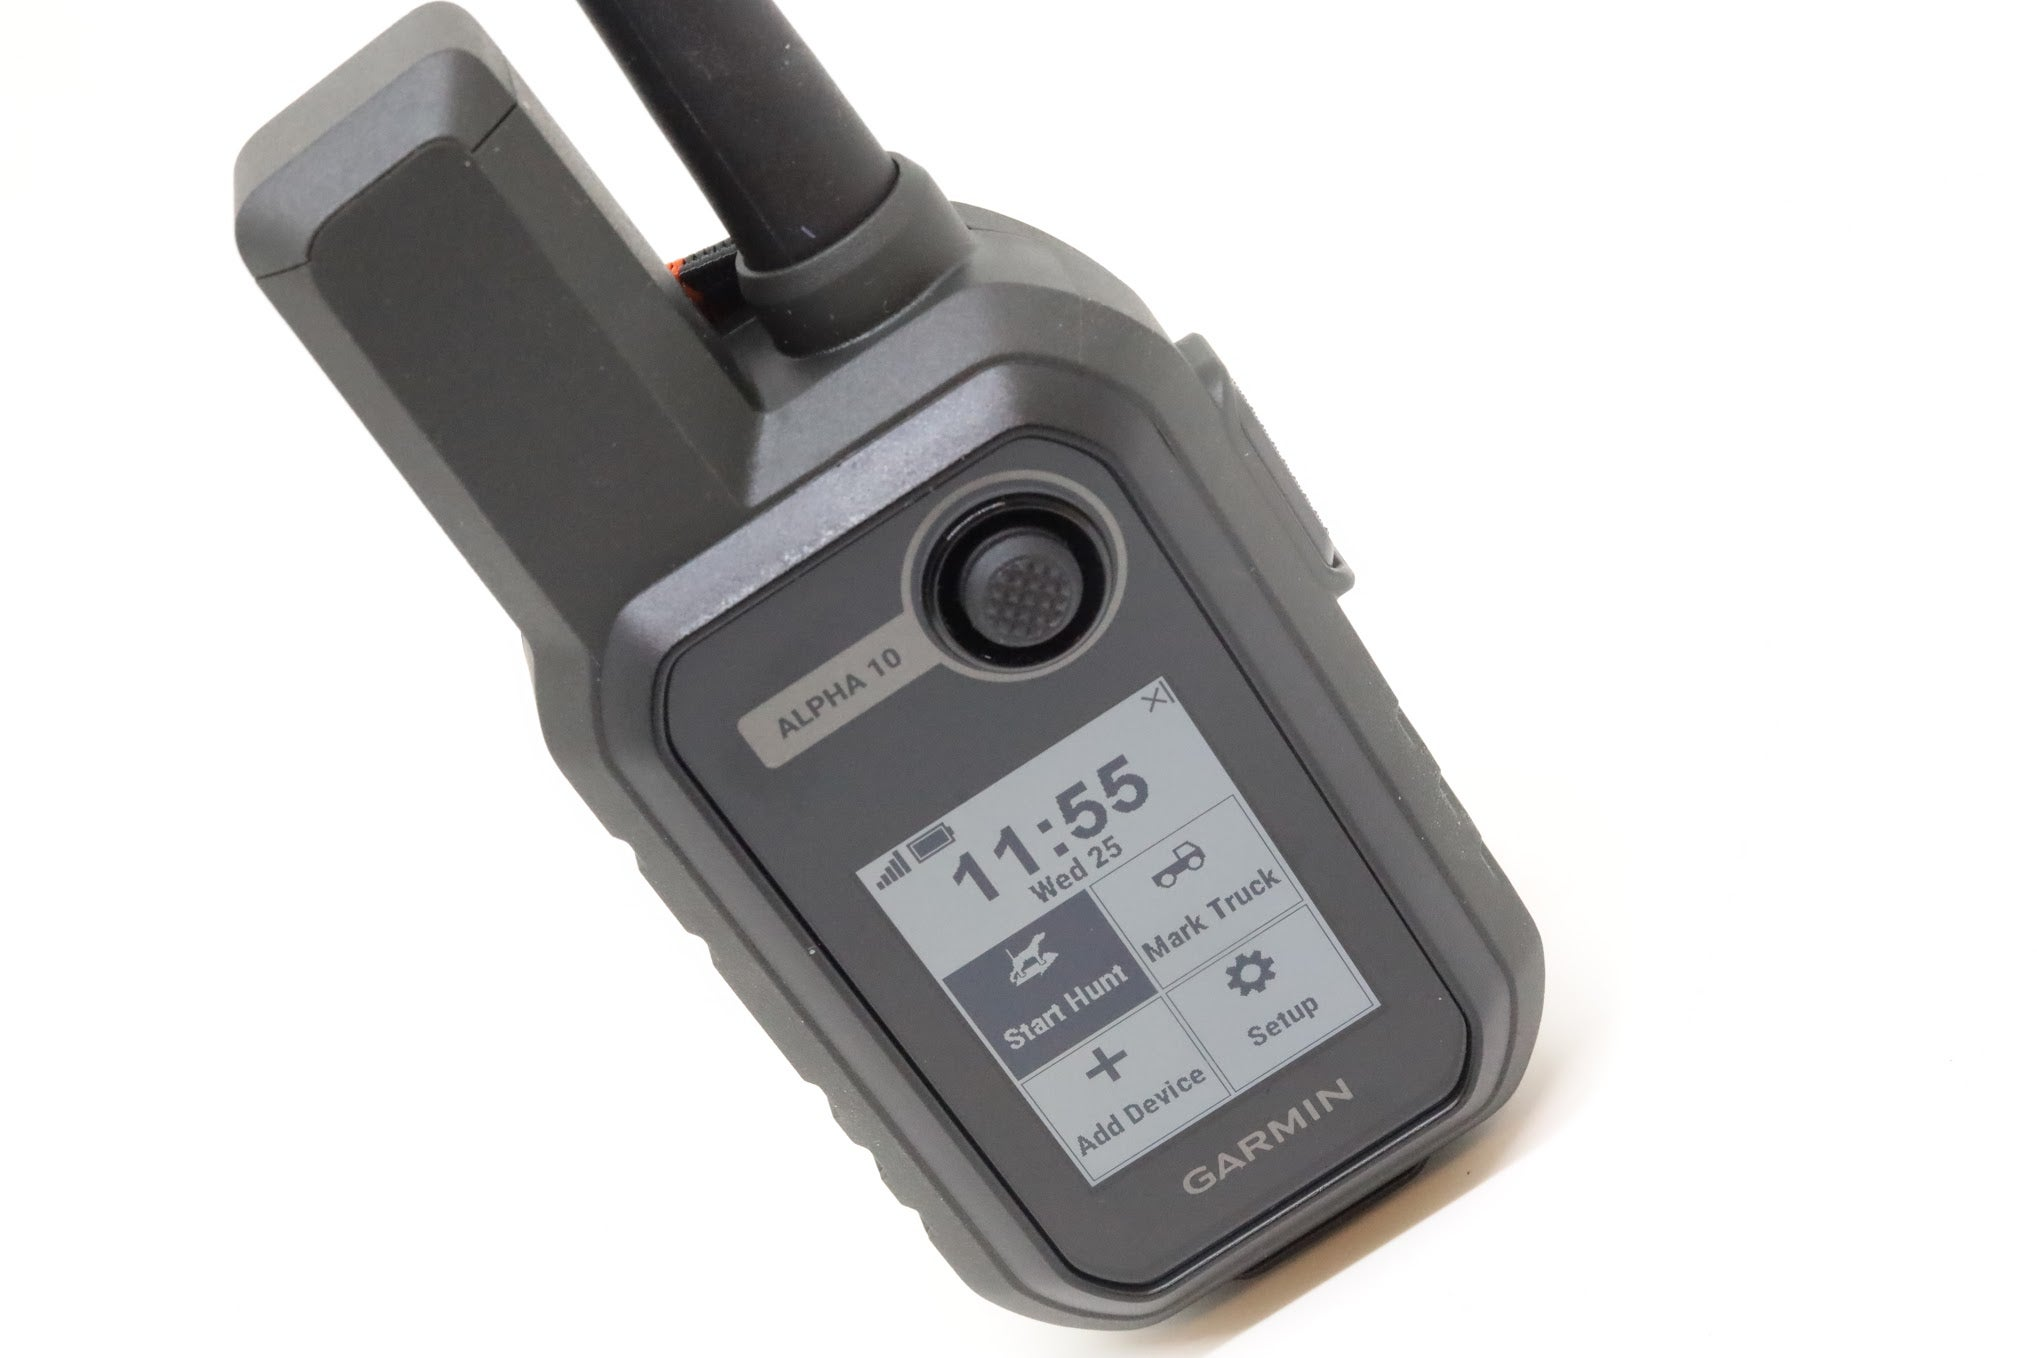 The Garmin Alpha 10 handheld device on a white background